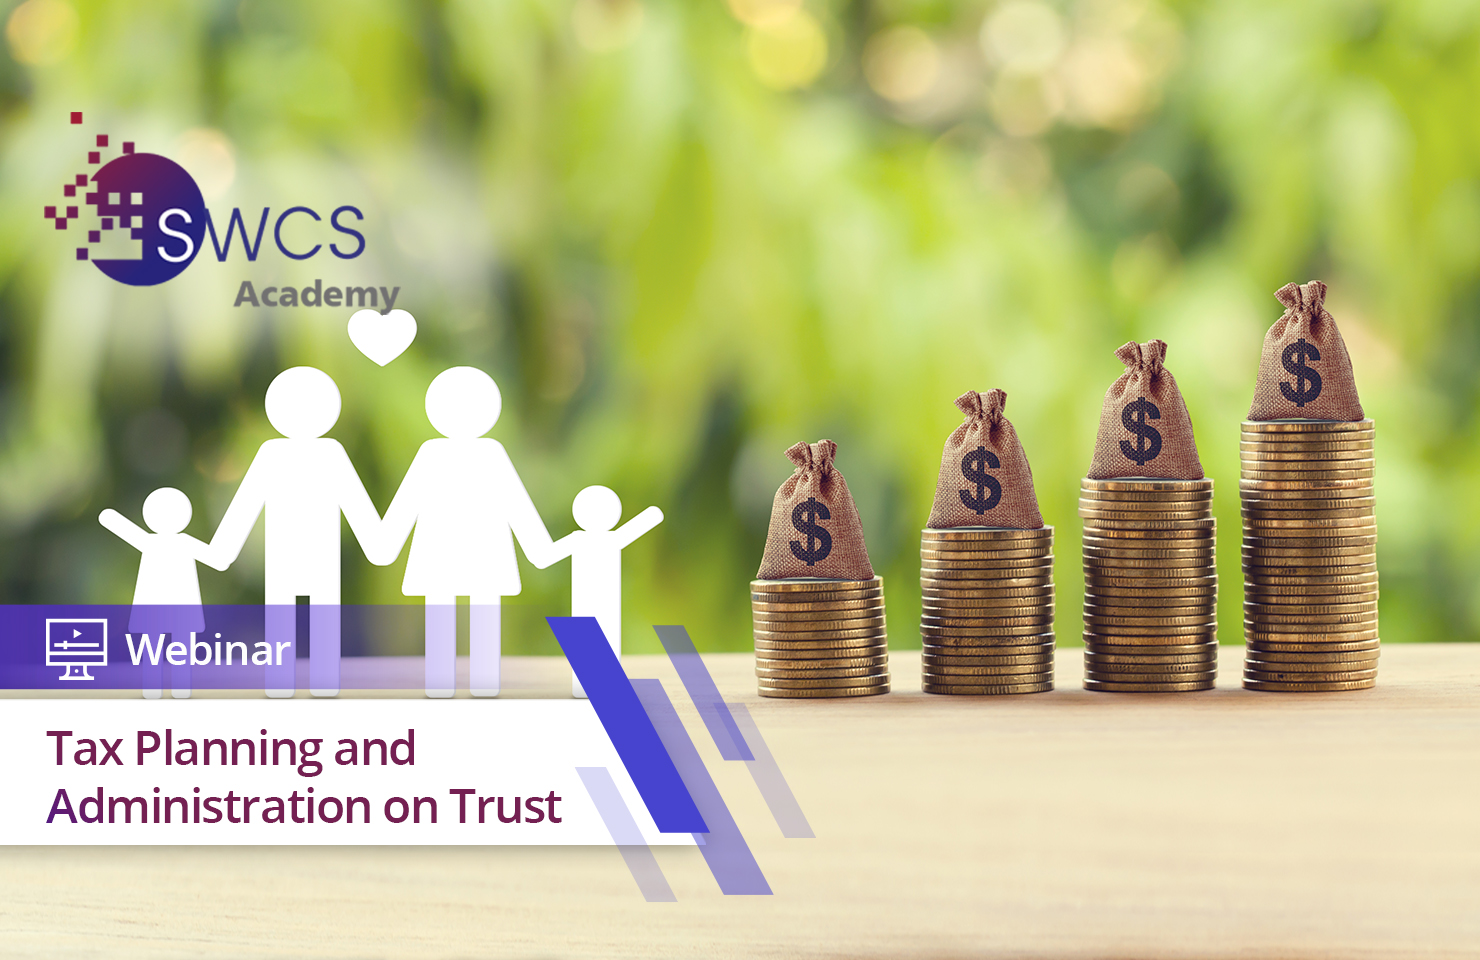 Tax Planning and Administration on Trust